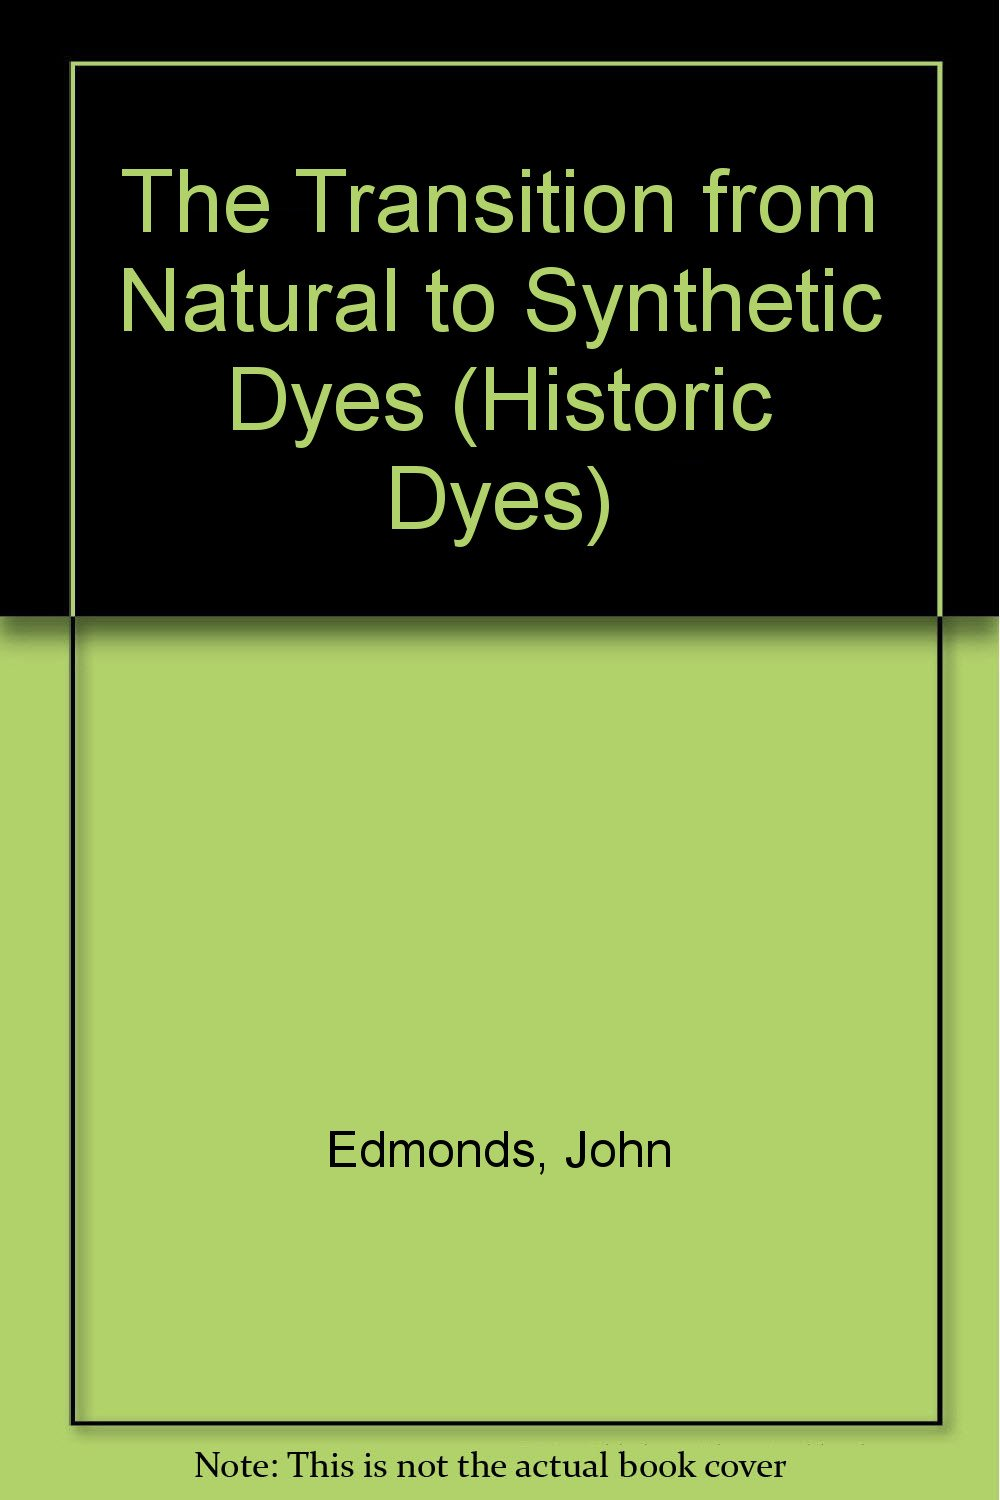 The Transition from Natural to Synthetic Dyes (Historic Dyes)